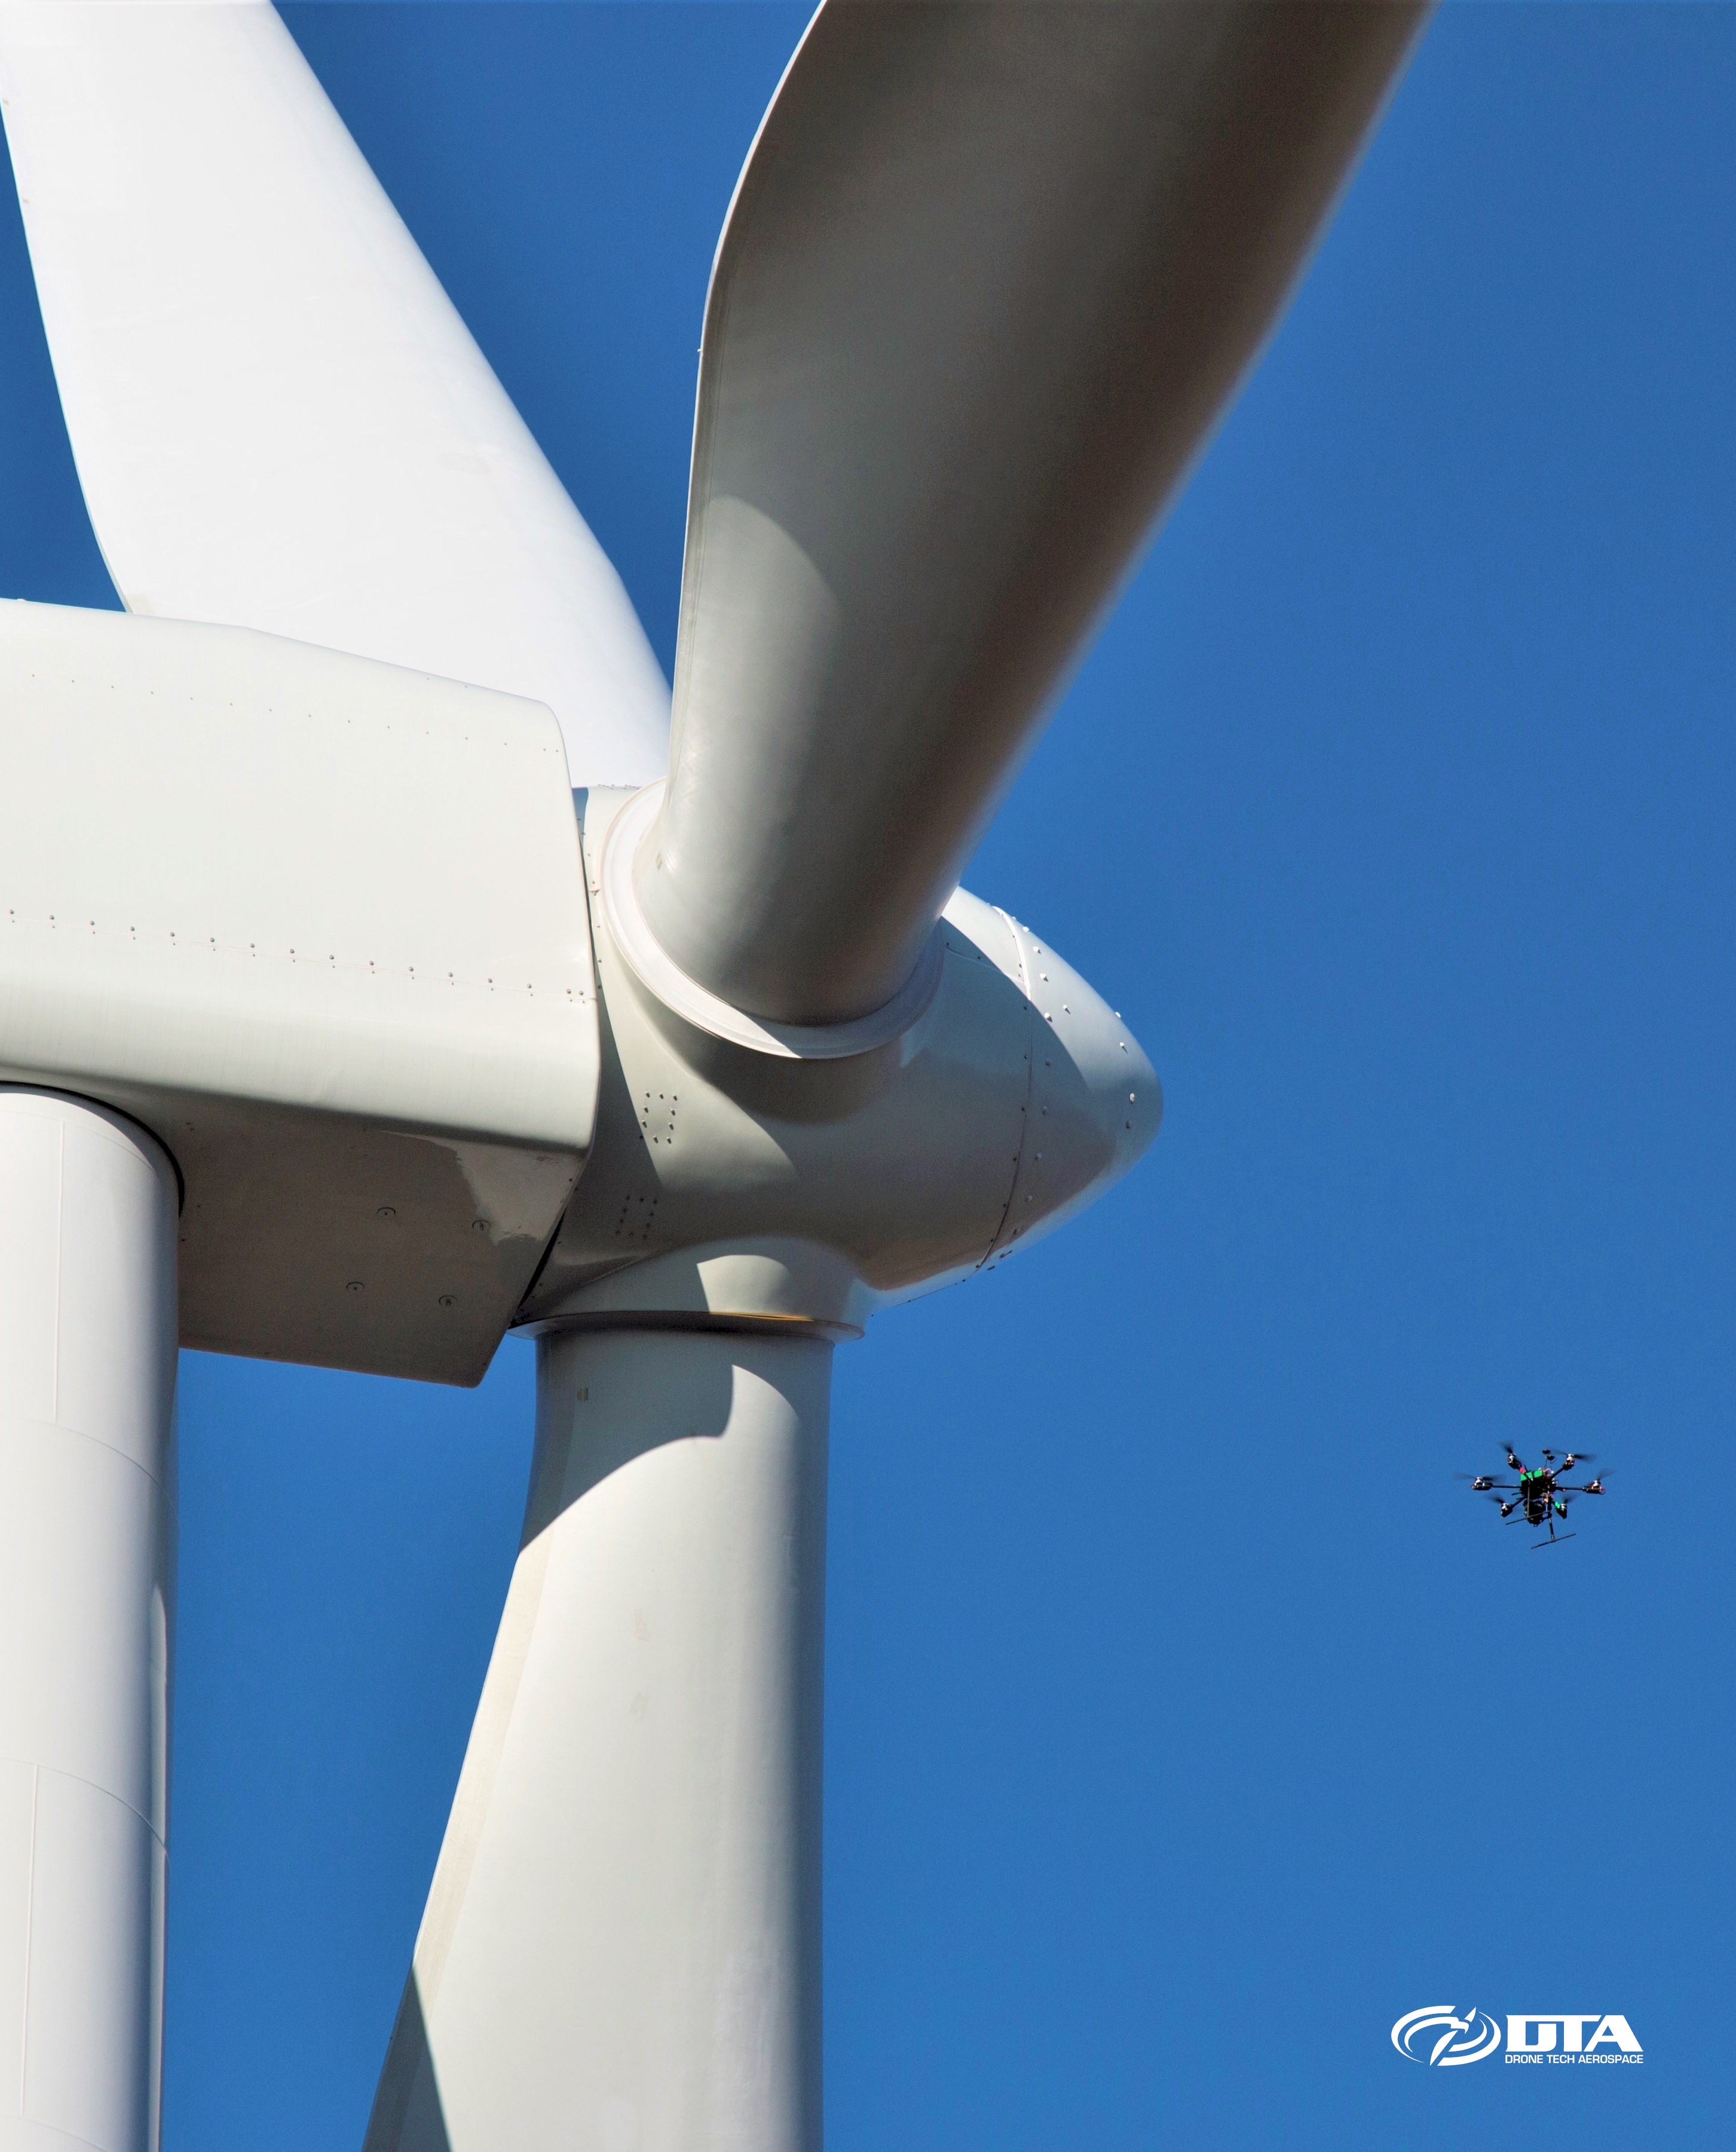 Drone Turbine Inspections